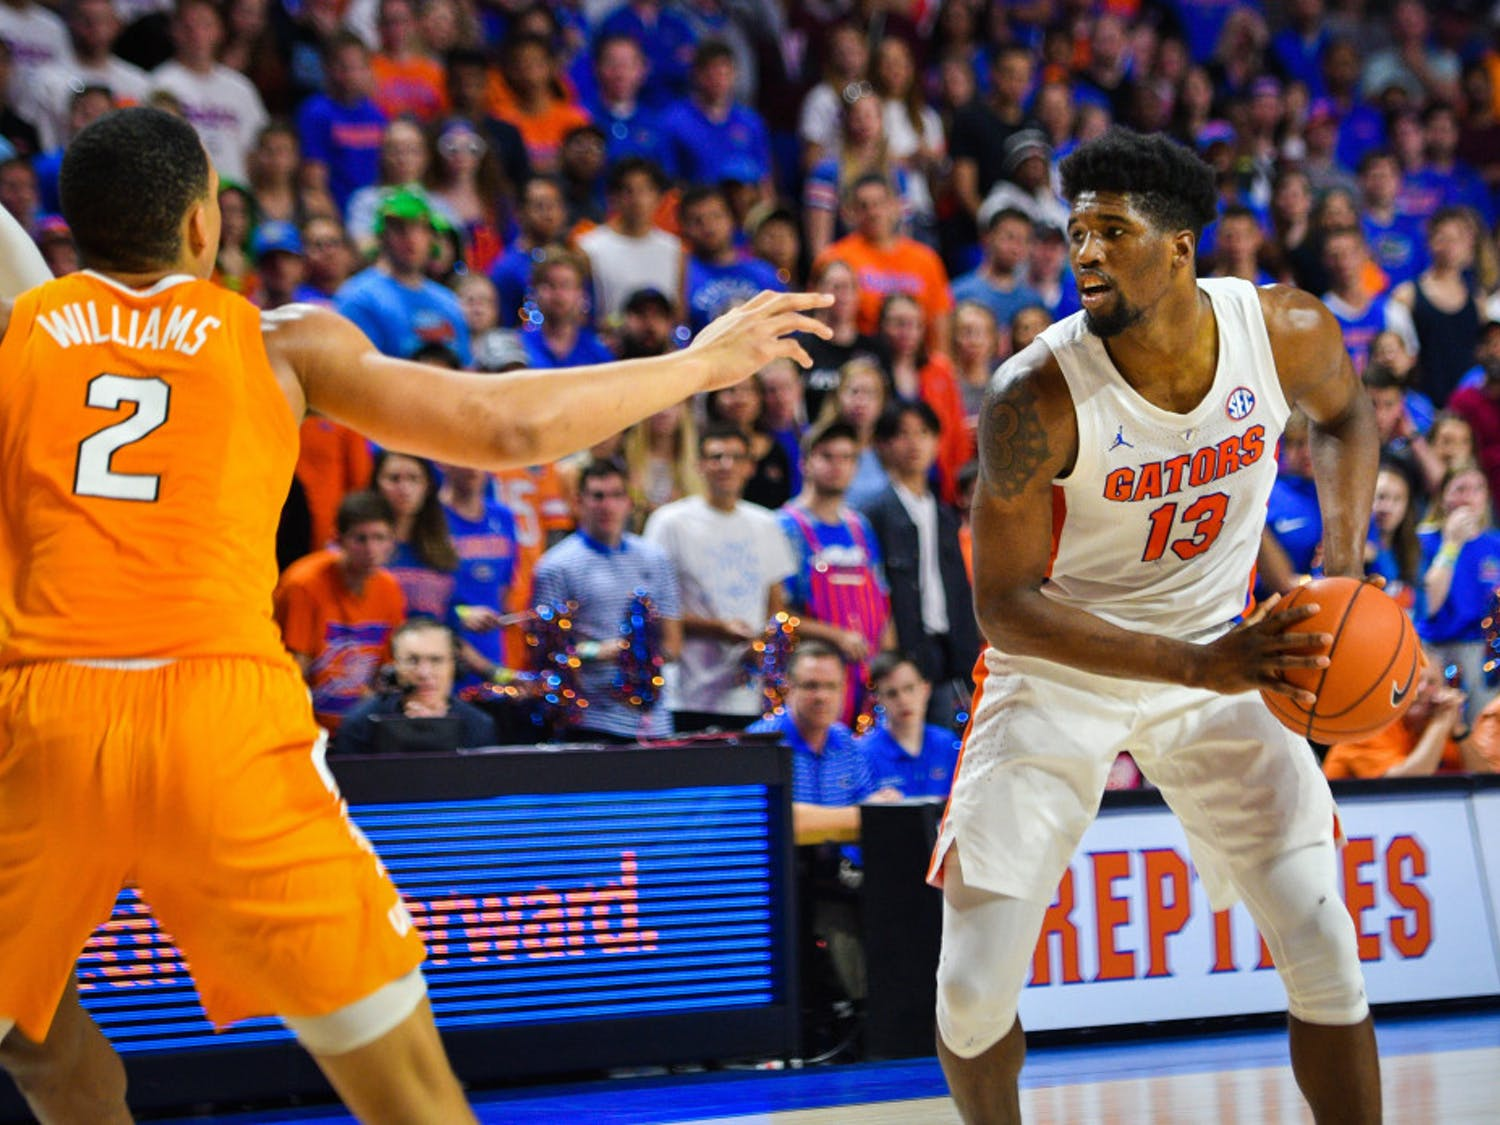 Florida center Kevarrius Hayes scored 11 points on 3-of-4 shooting on Tuesday against Auburn.